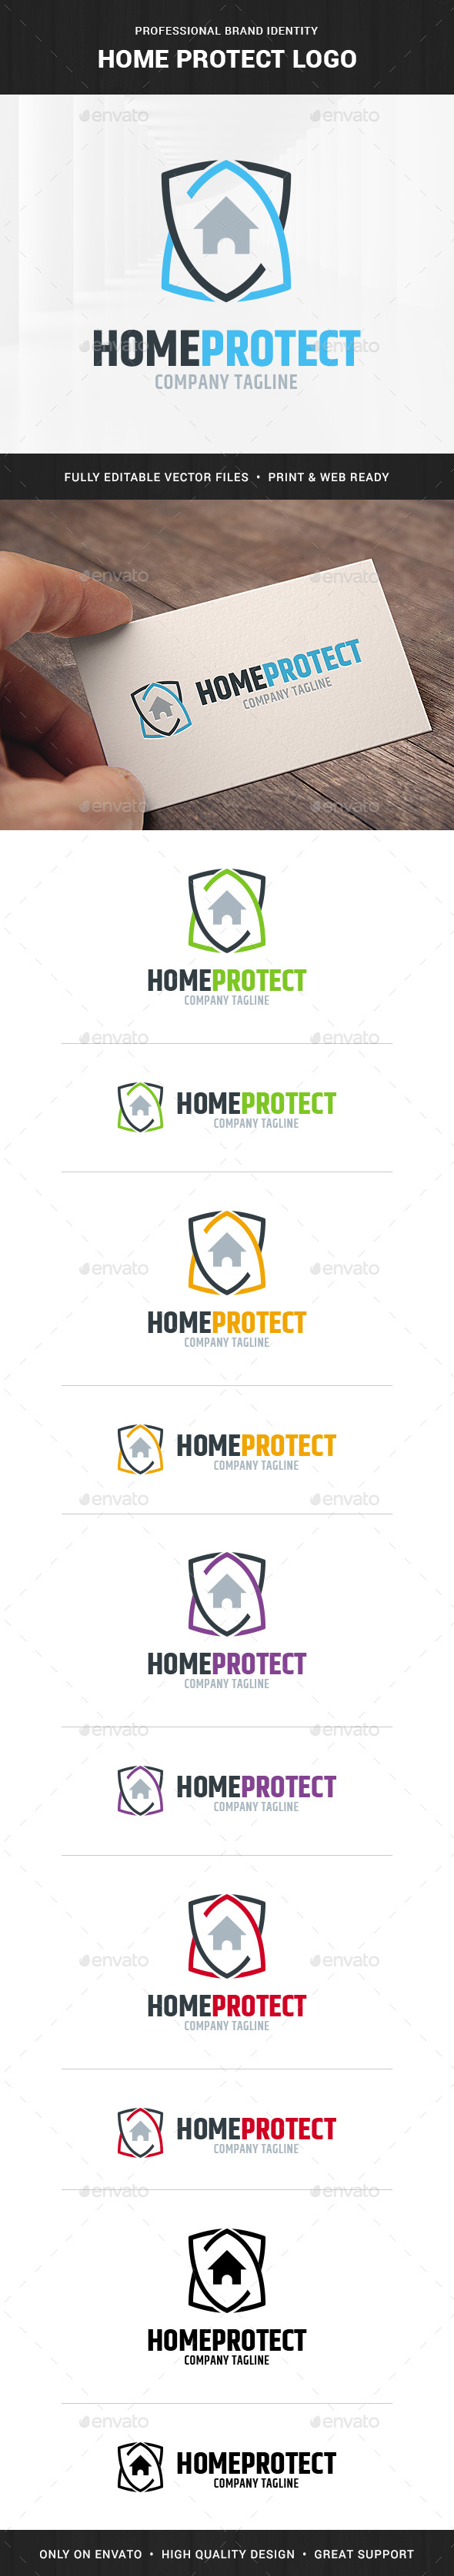 Home Protect Logo Template